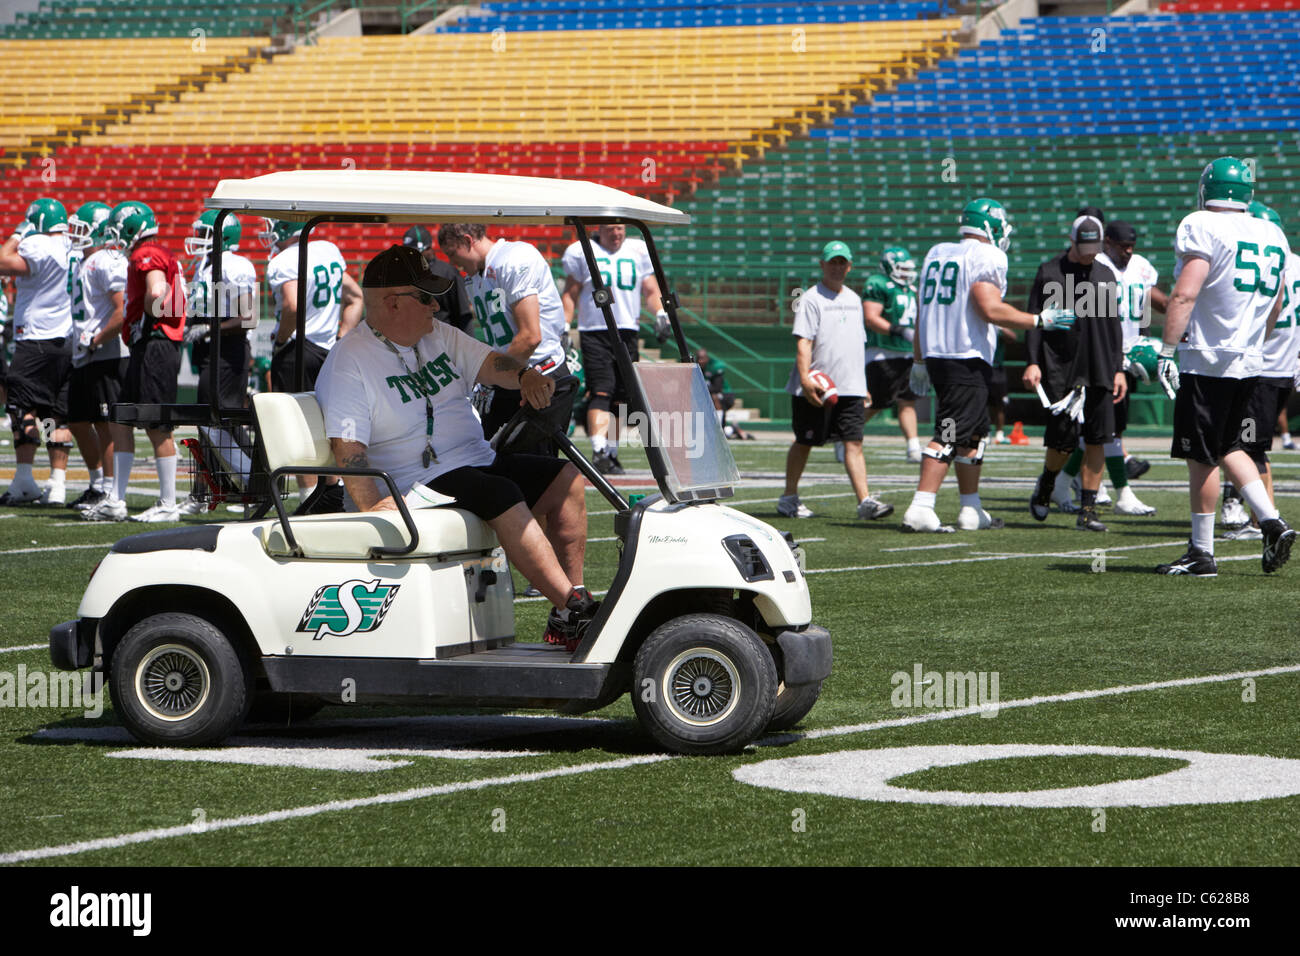 coaching staff drive golf cart on the pitch during saskatchewan roughriders pre season training mosaic stadium taylor - Stock Image